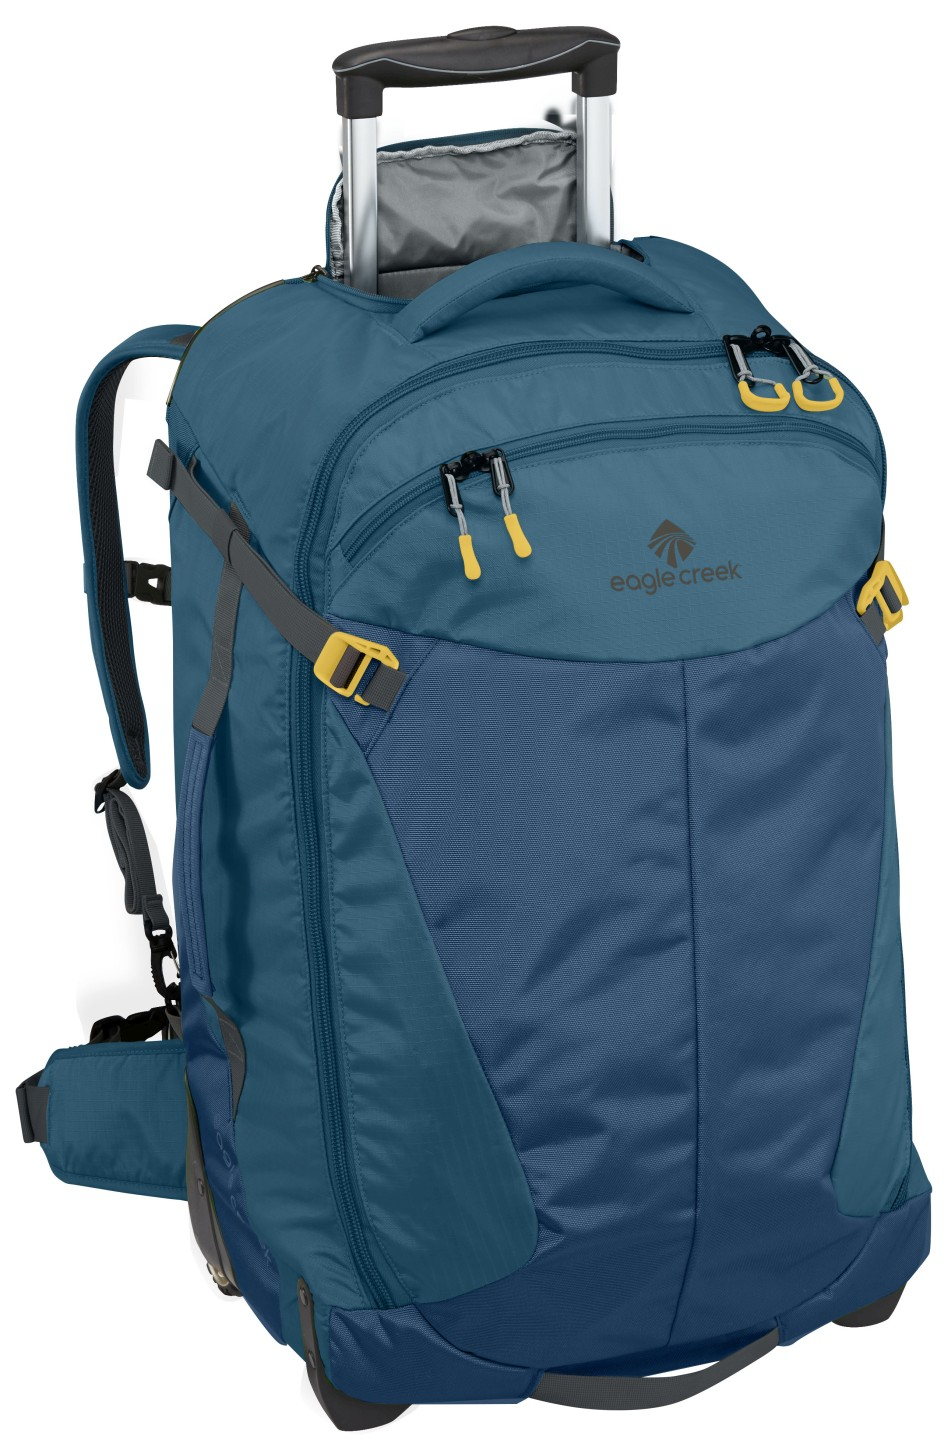 Eagle Creek Actify Wheeled Backpack 26 night sky-30